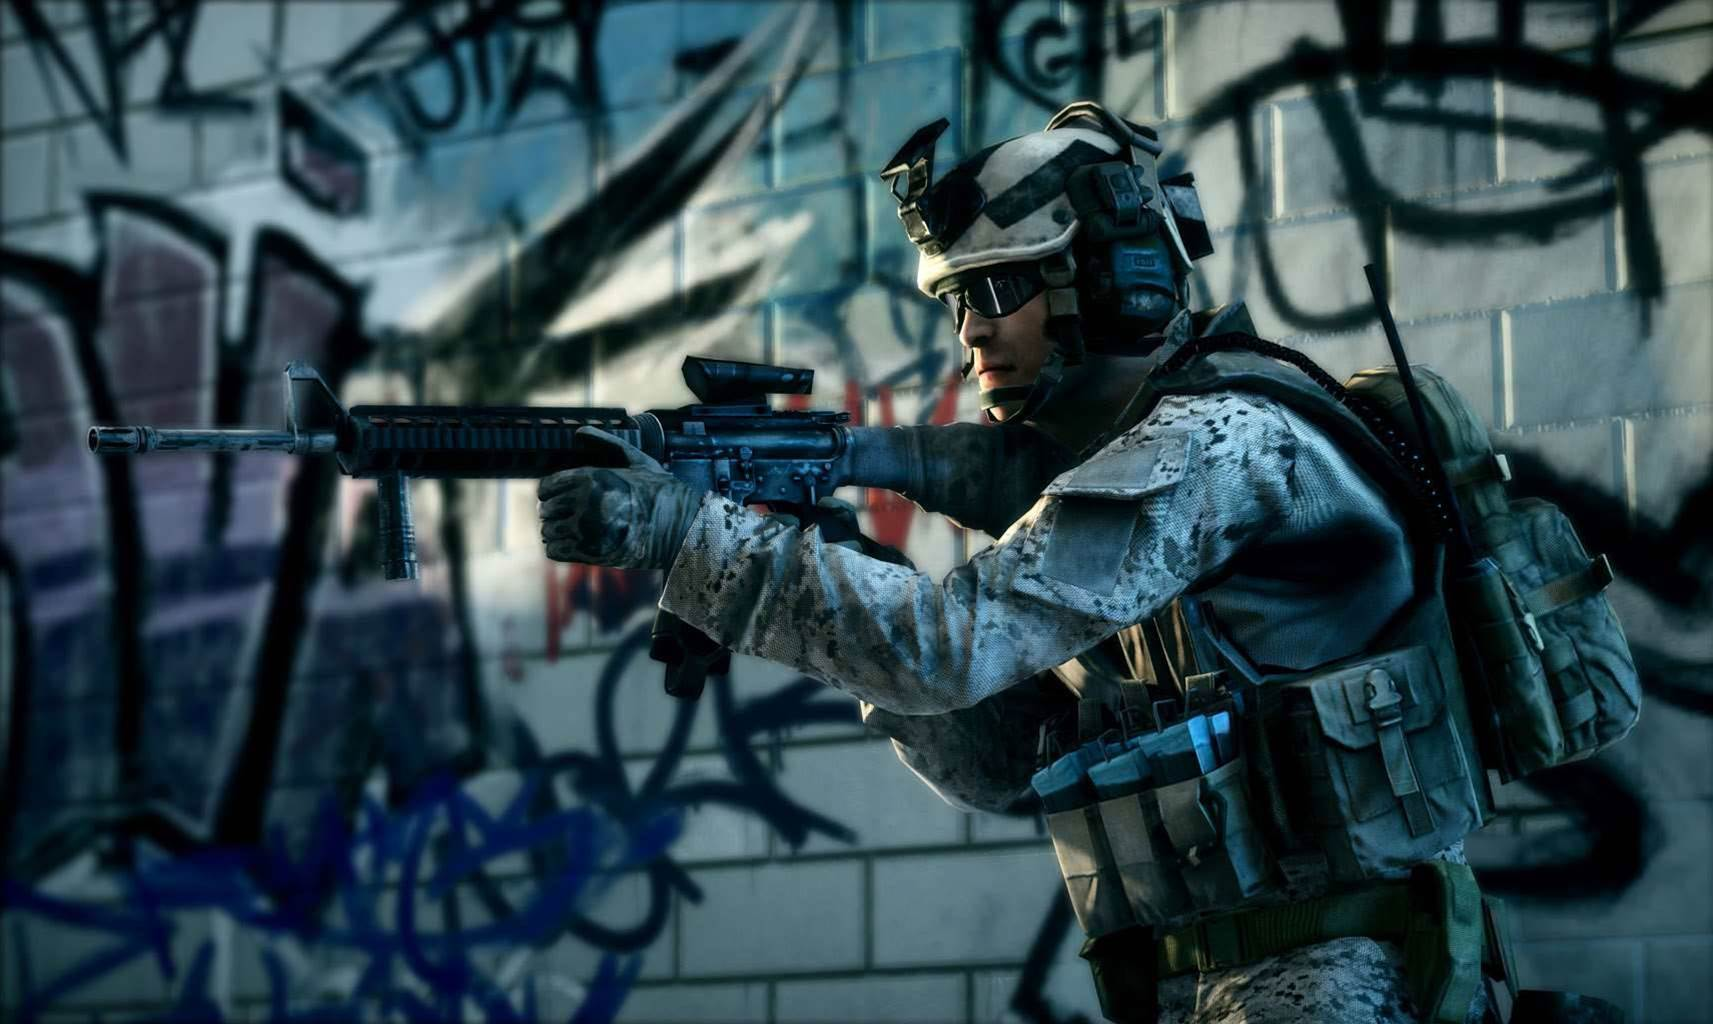 Battlefield 3 MP beta starting this month!